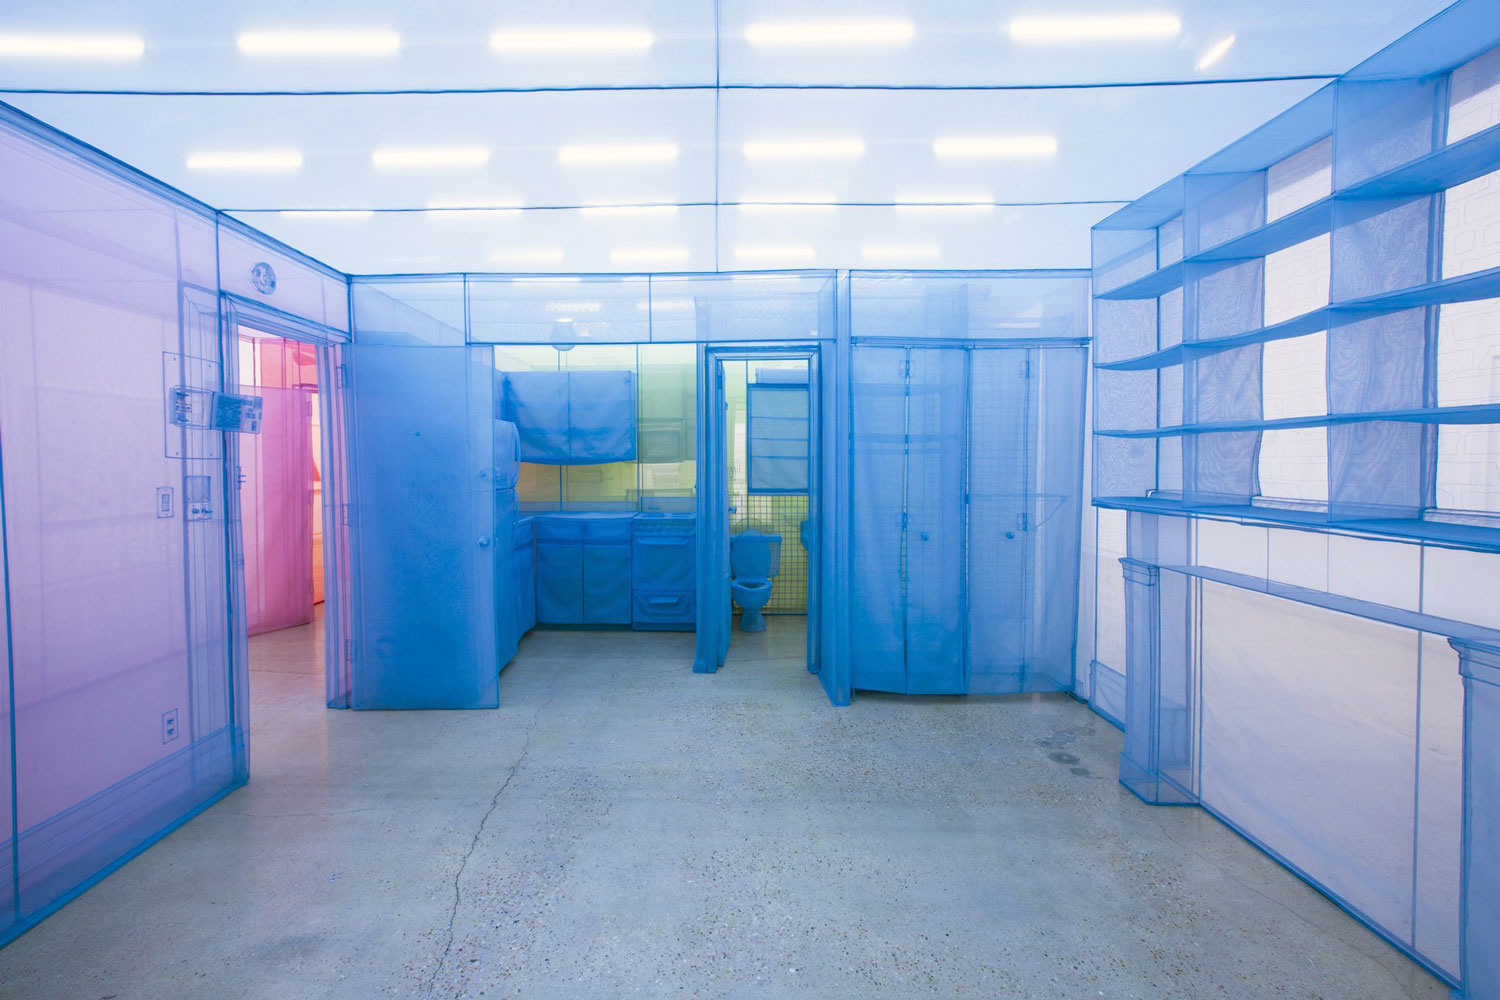 do ho suh sewn fabric sculptures interior of a house